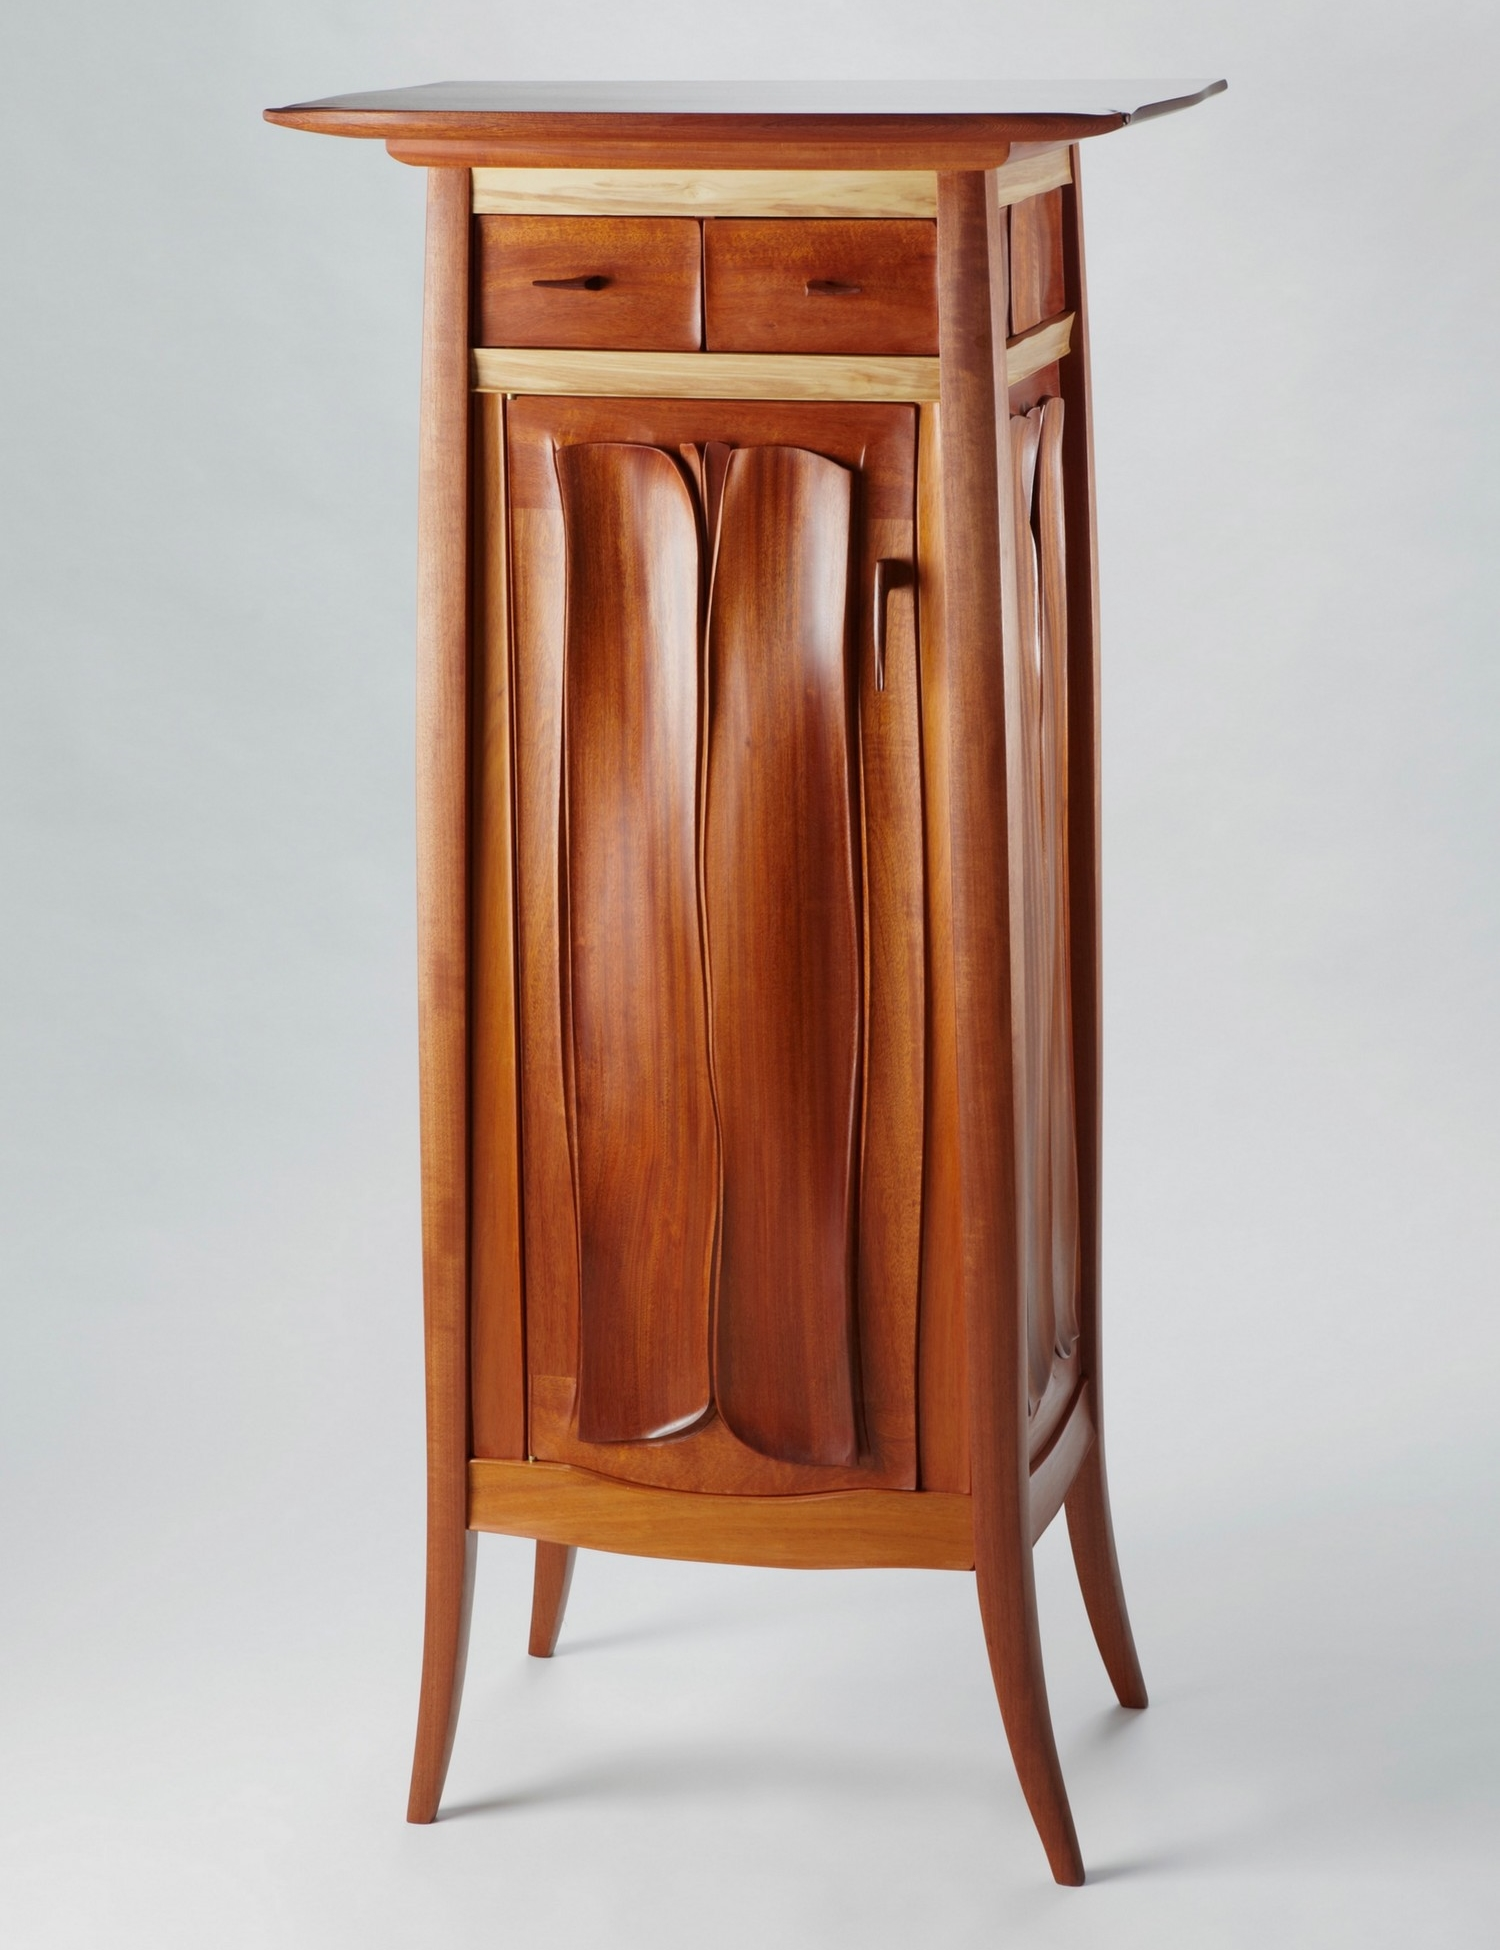 One Door Cabinet with Drawers